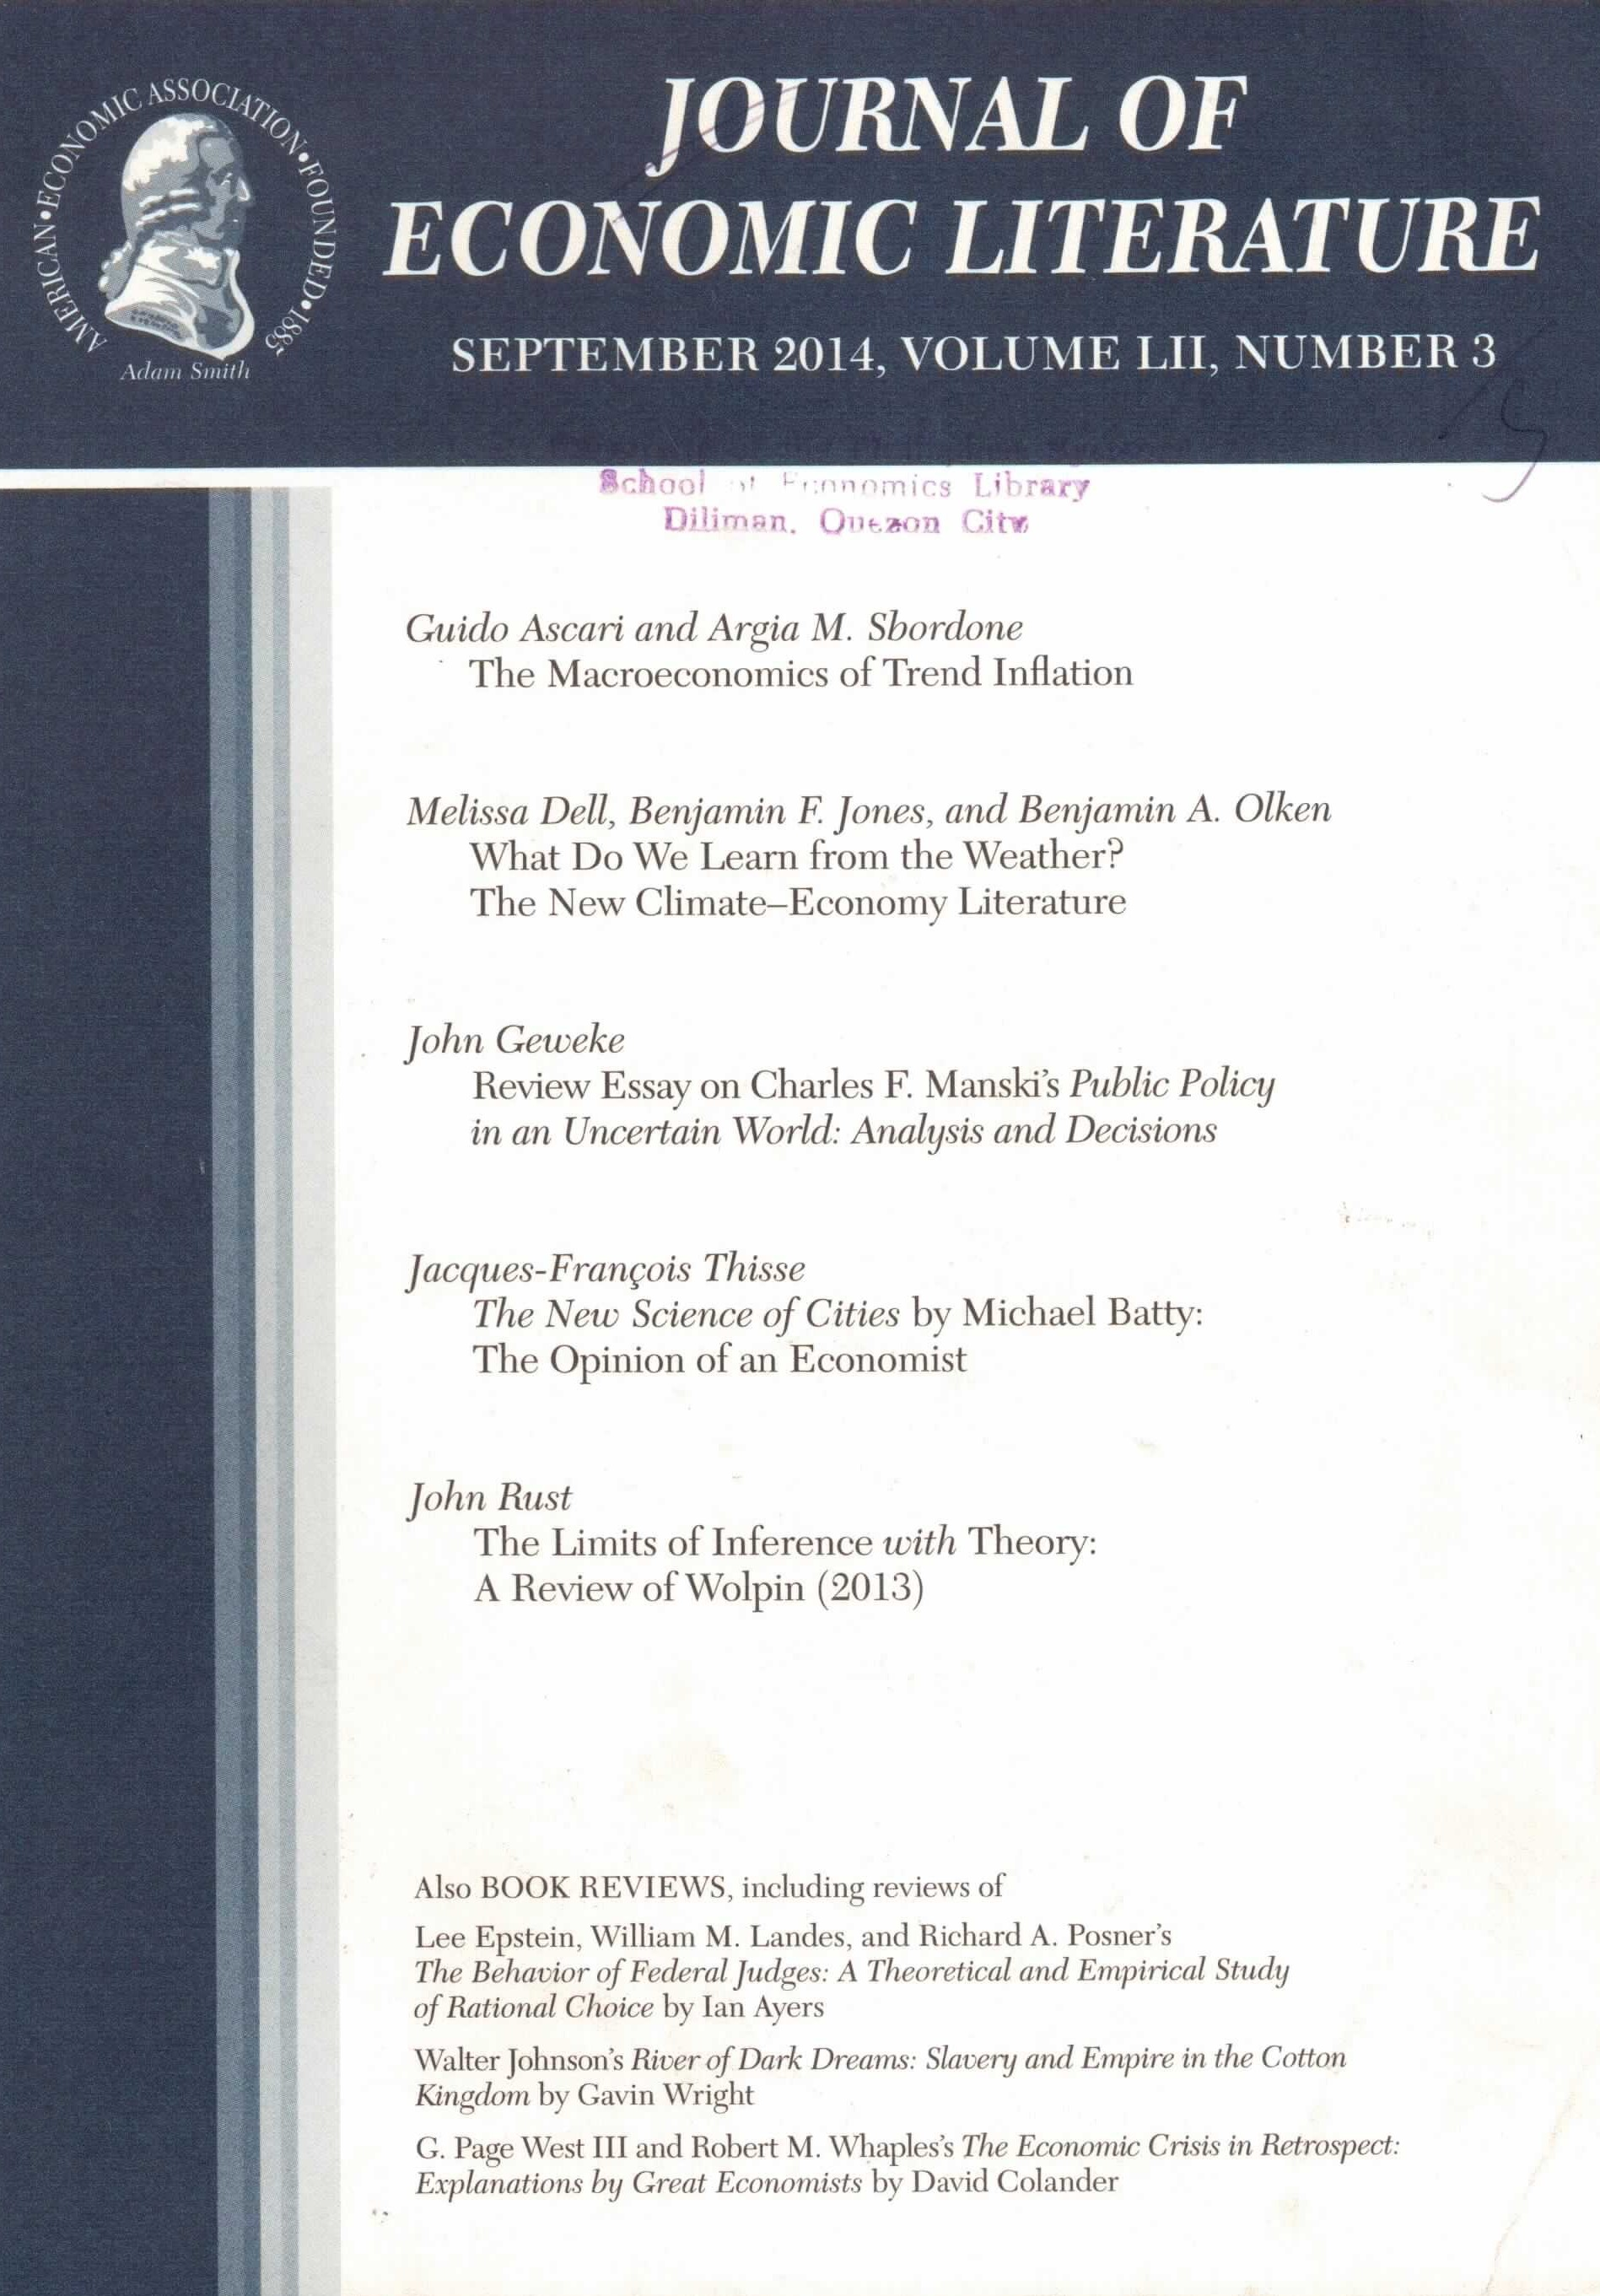 new acquisitions periodicals upse library journal of economic literature